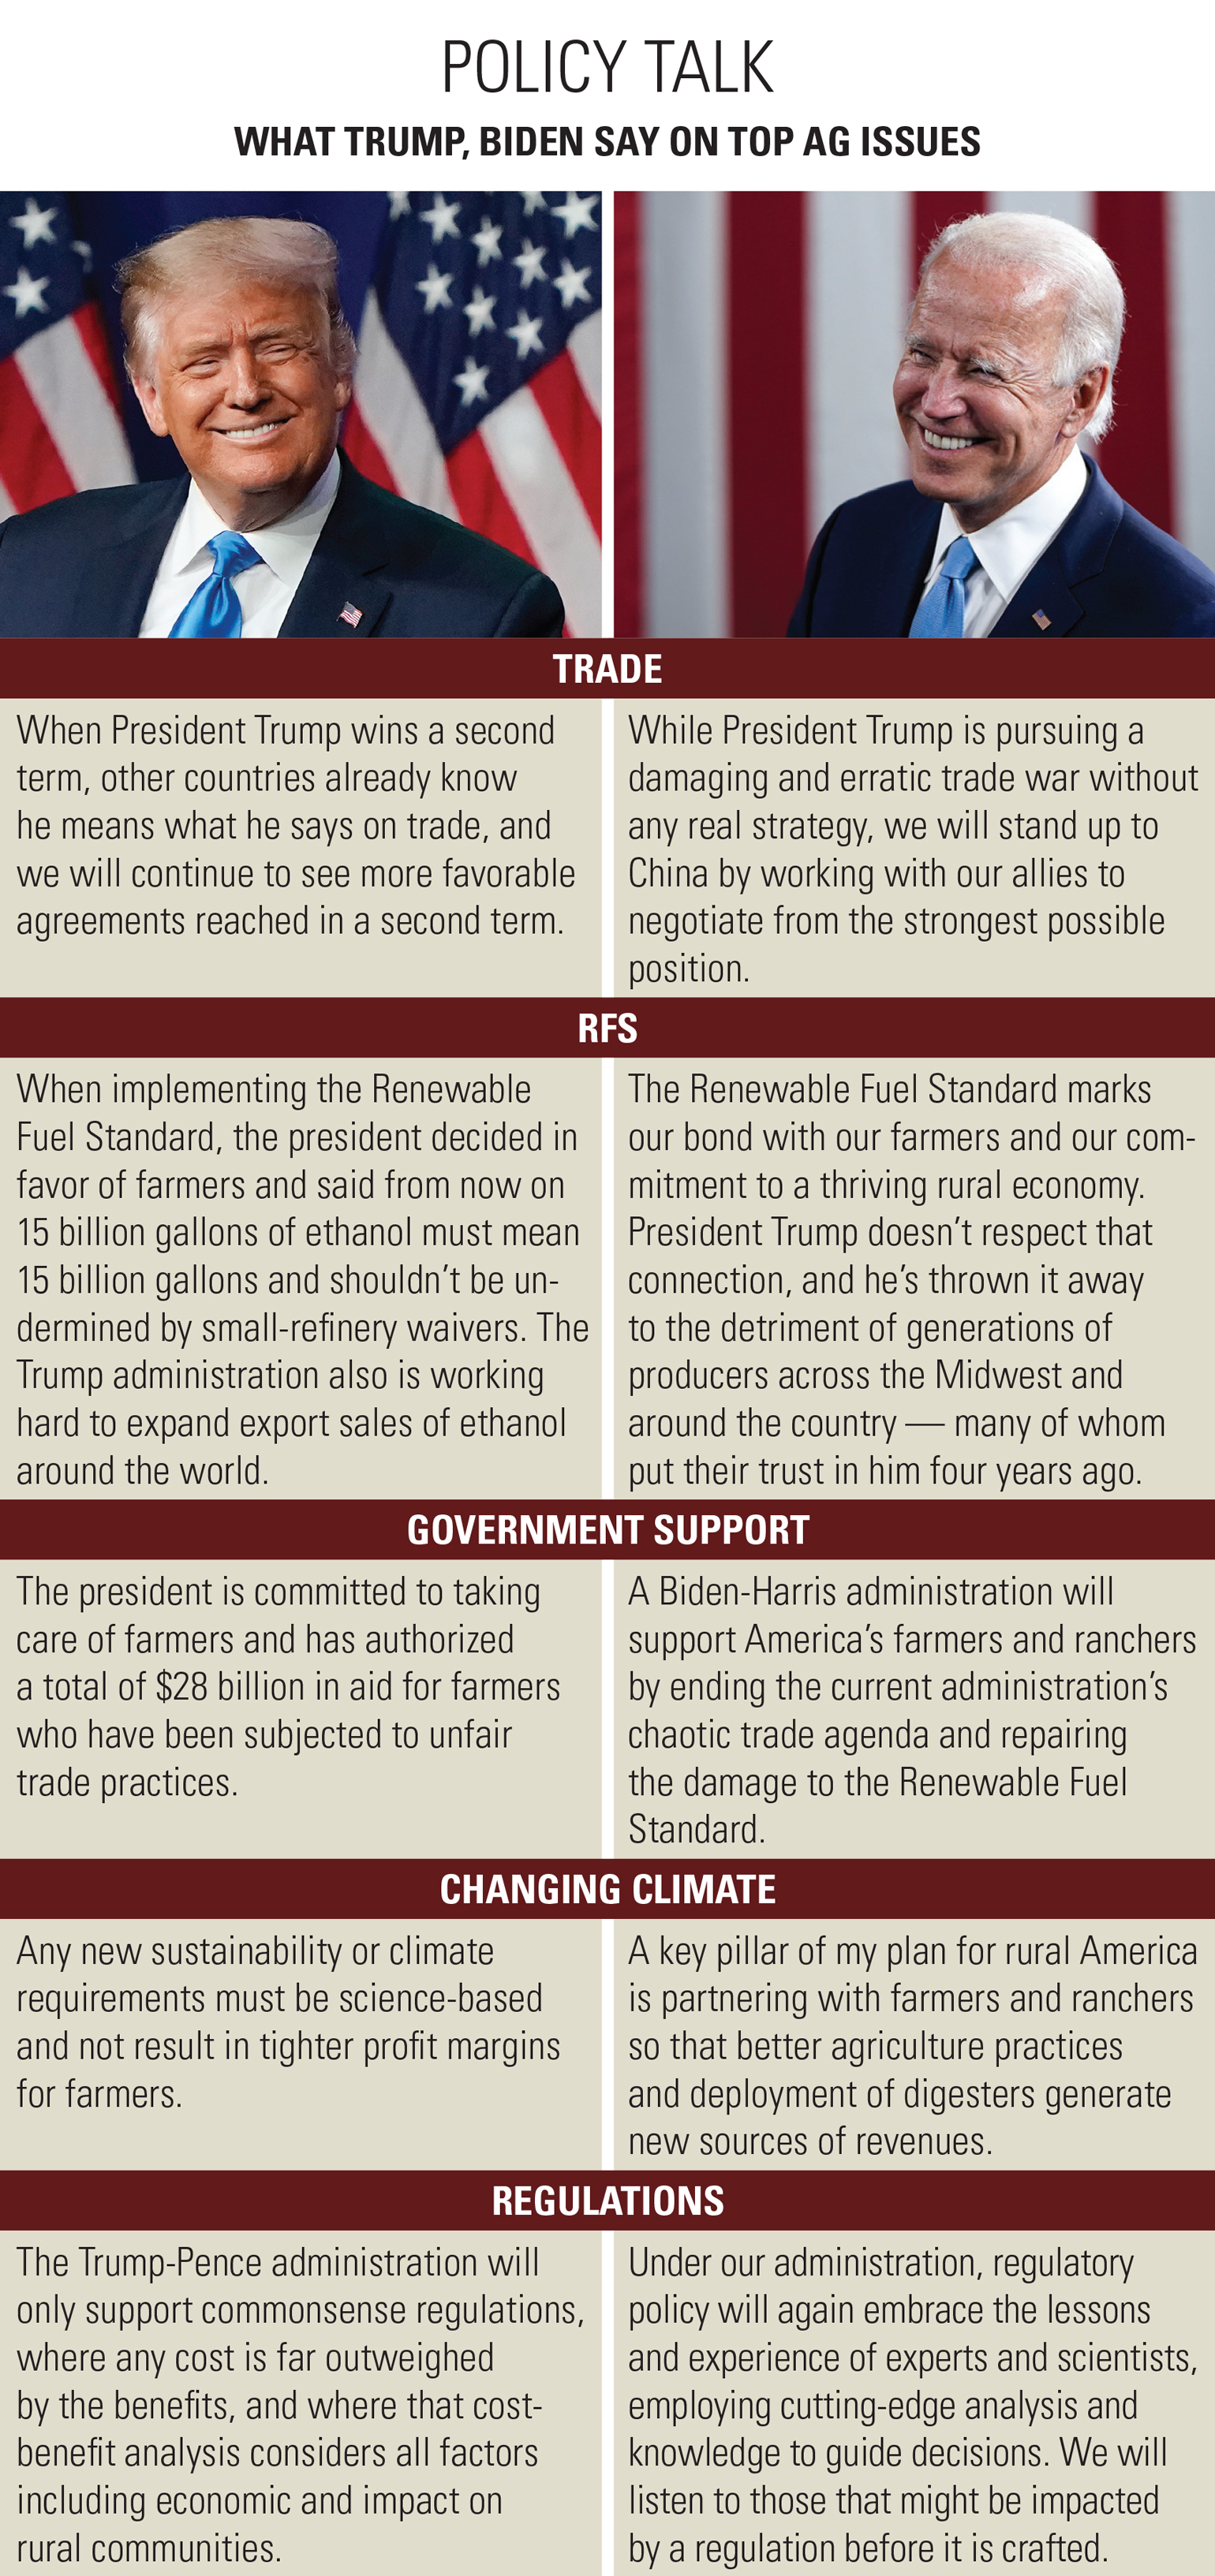 Comparison of where Trump, Biden stand on ag issues